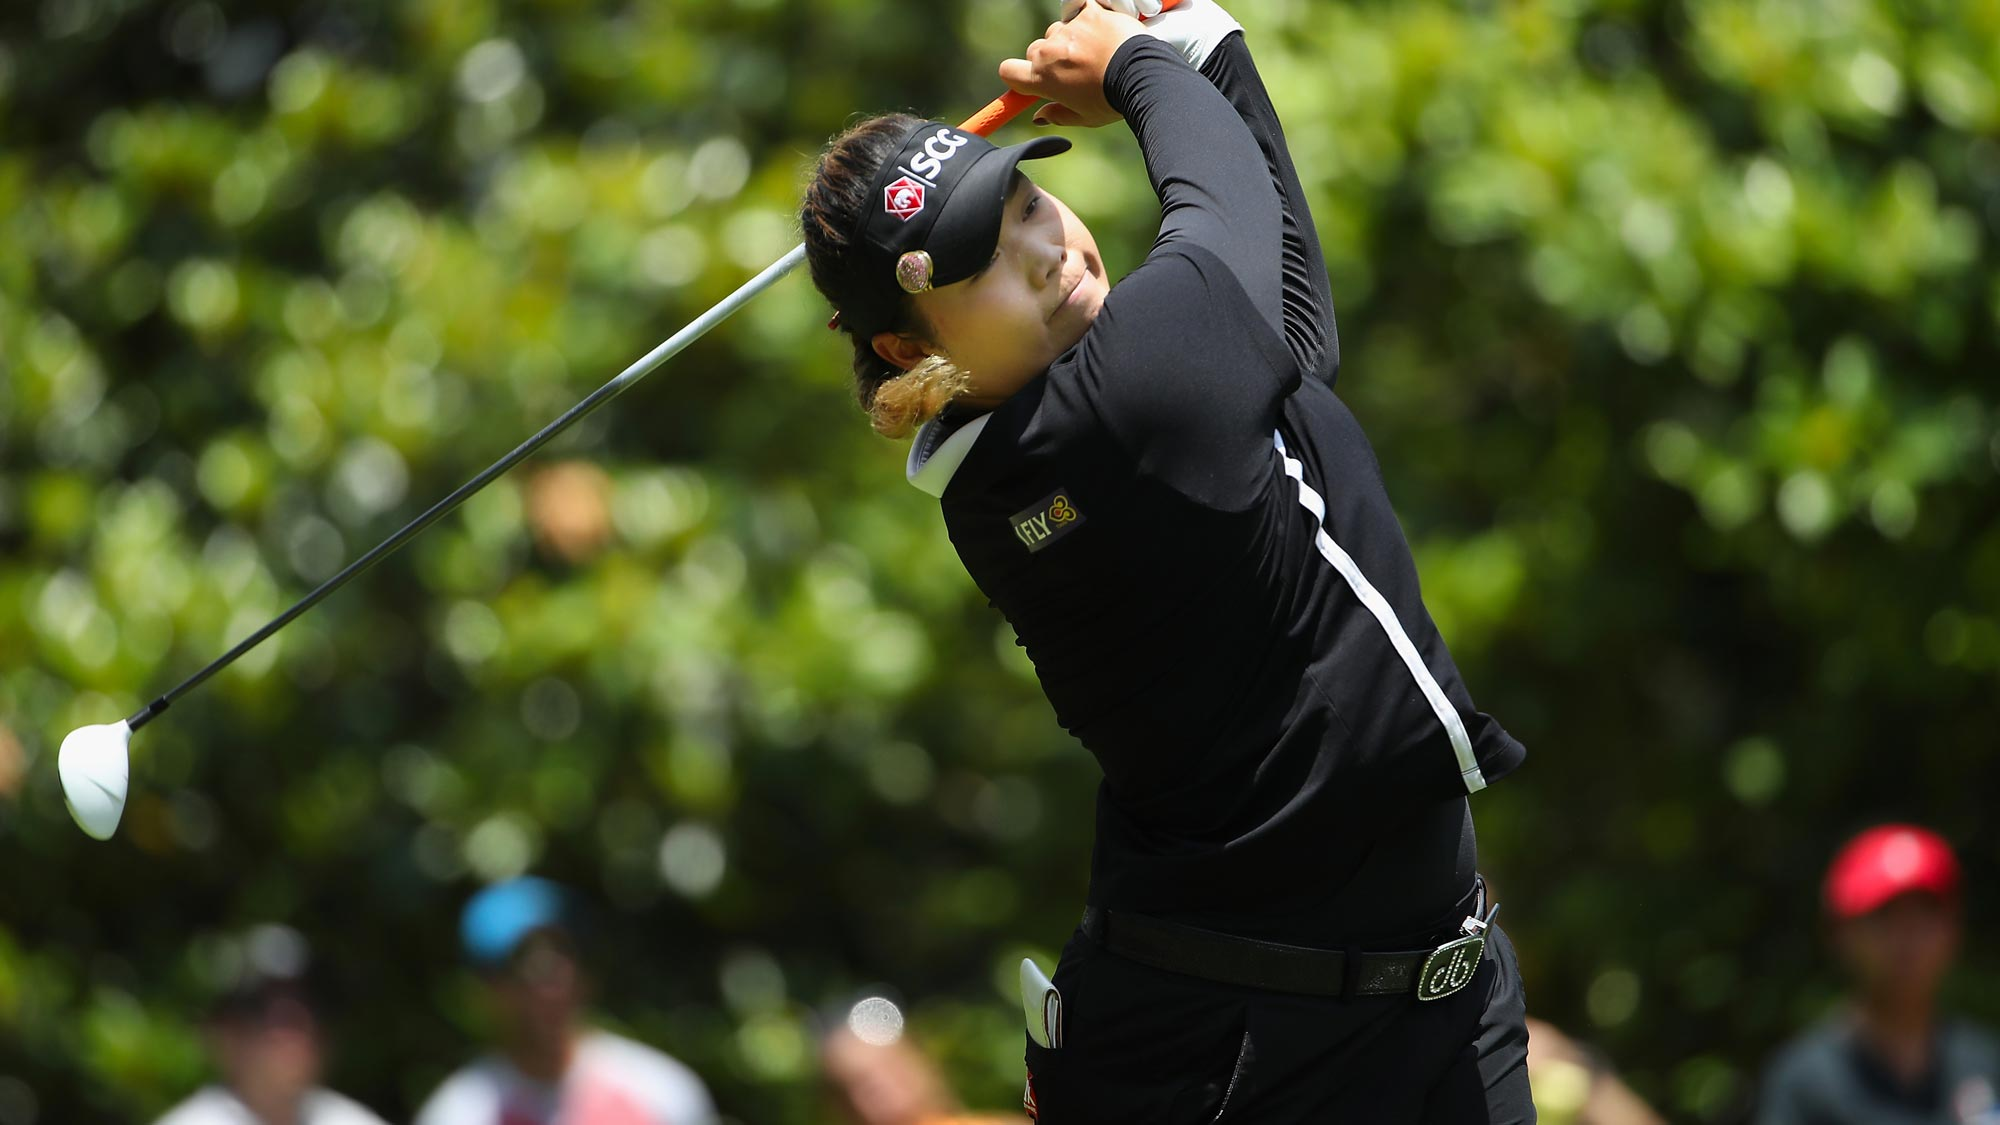 Ariya Jutanugarn of Thailand plays a tee shot on the third hole during the final round of the 2018 U.S. Women's Open